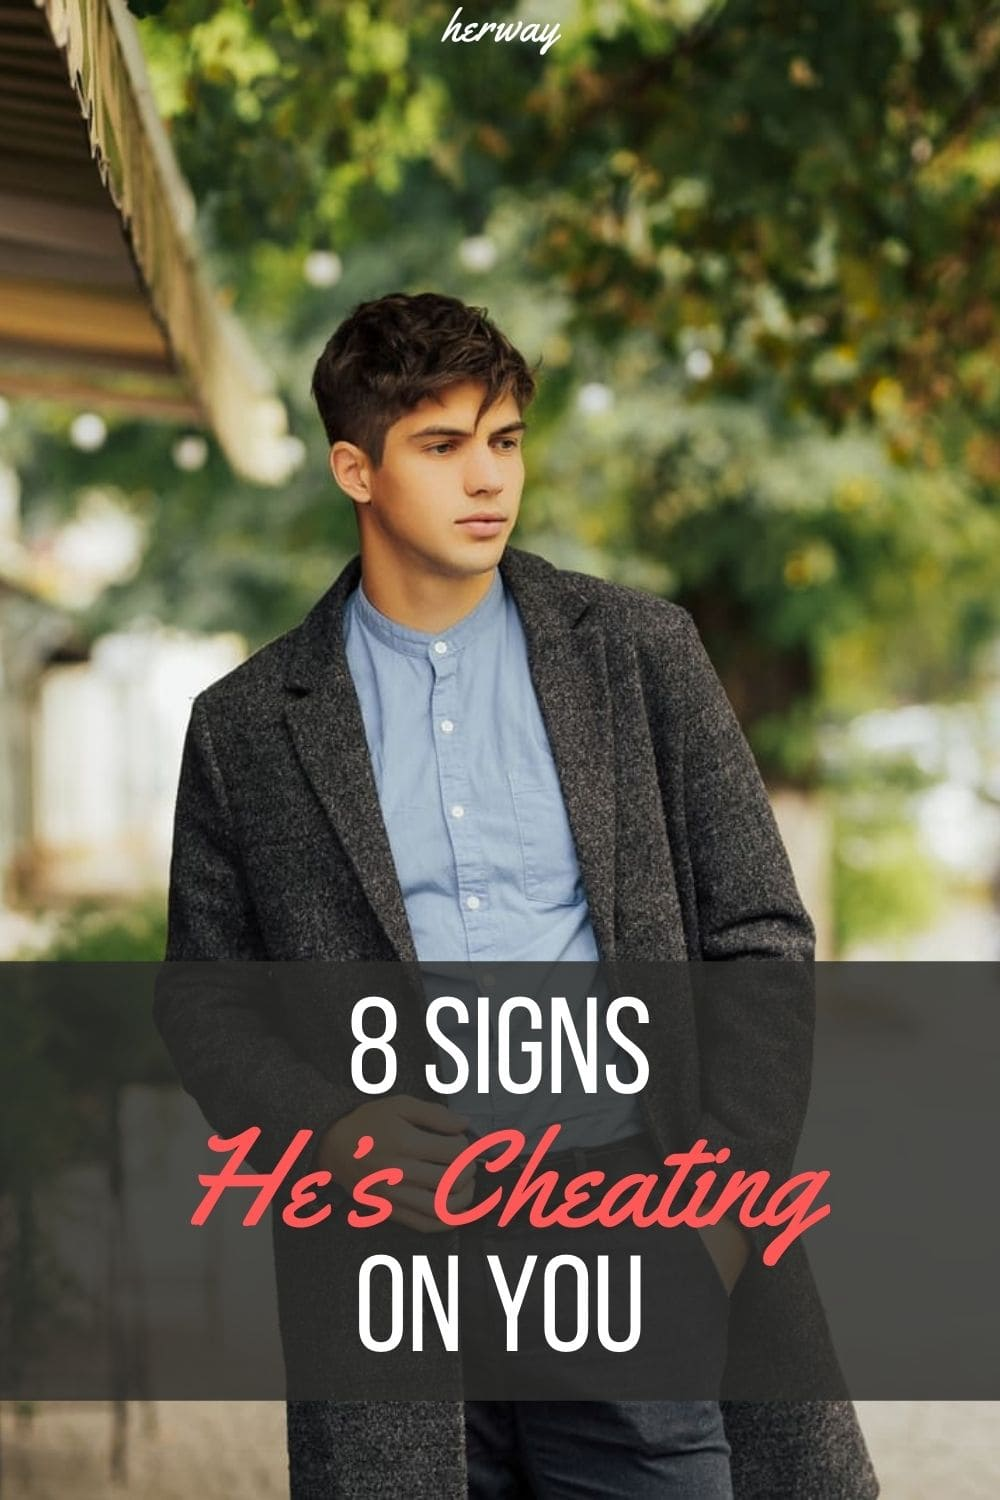 8 Signs He's Cheating On You